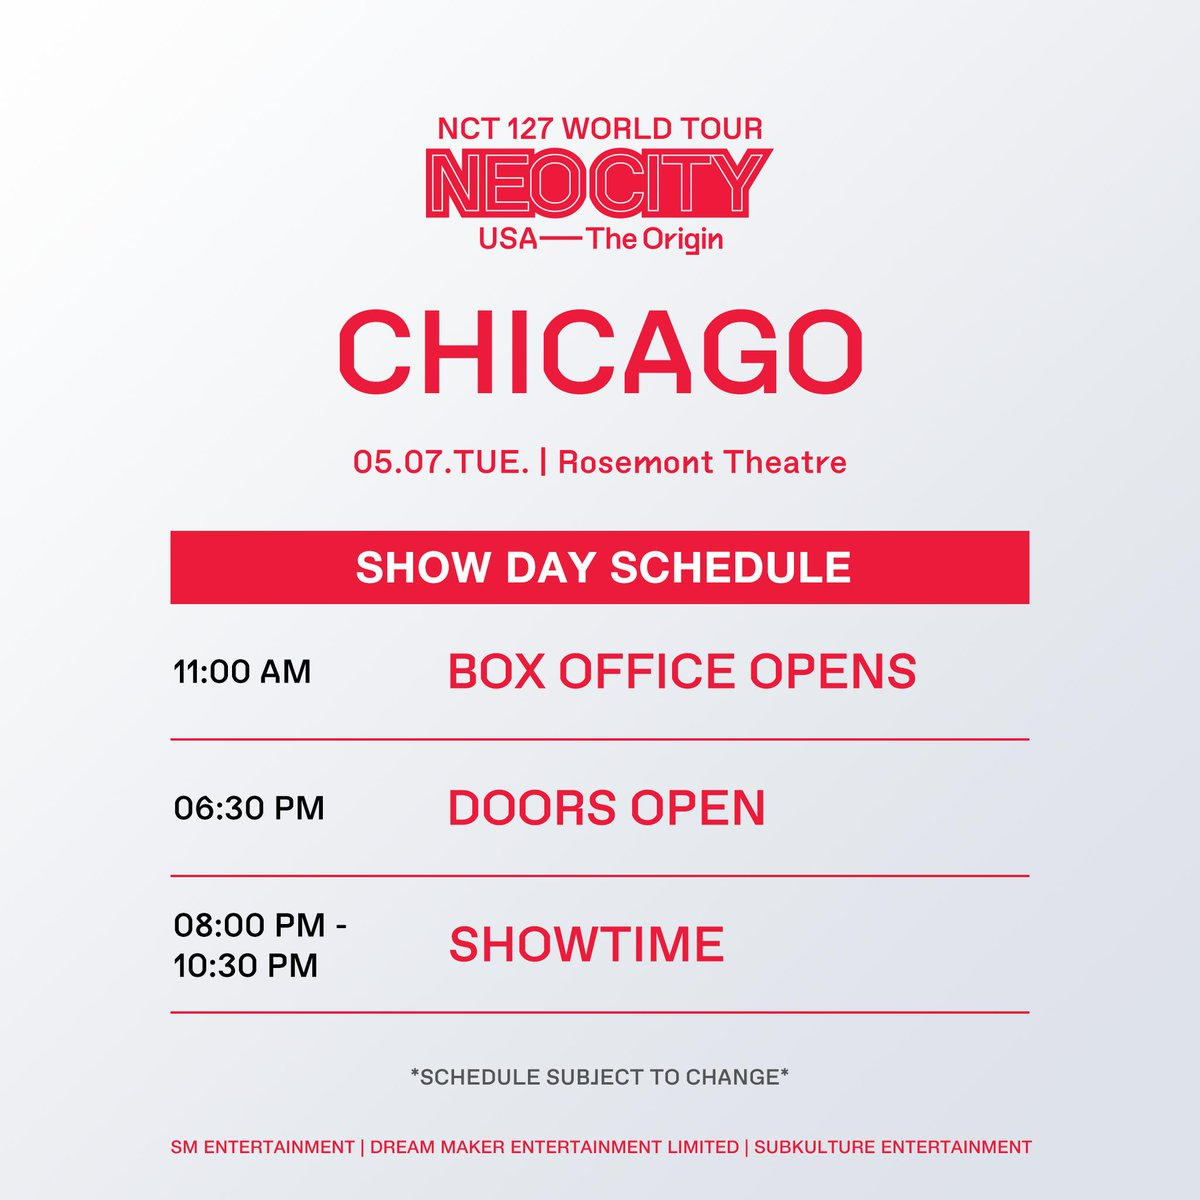 Chi-town NCTzens  Who's excited for Johnny's return to his hometown?  Peep our #NEOCITYinCHI show day schedule and get ready to welcome the boys  #NCT127inCHI #NEOCITYinUSA #NCT127inUSA #NCT127<br>http://pic.twitter.com/RYcFzzDYkL